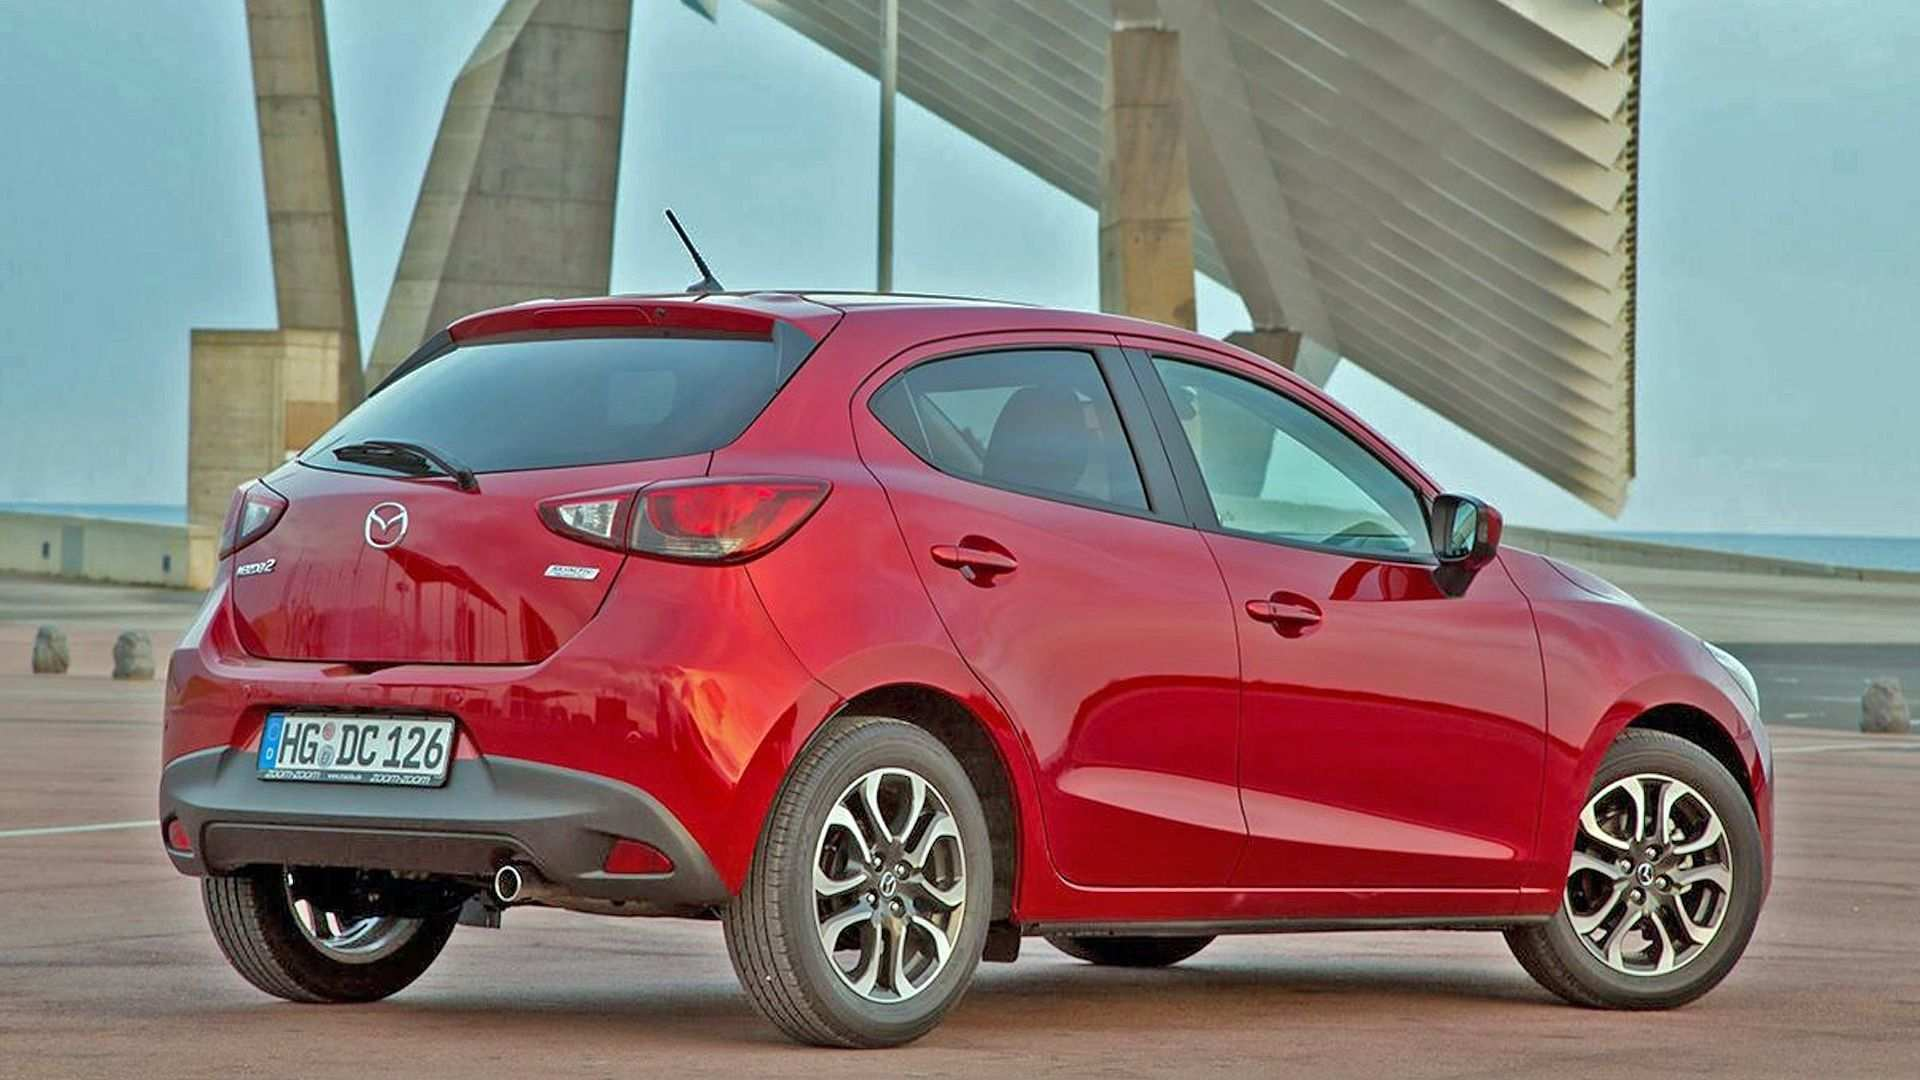 40 Gallery of Mazdas New Engine For 2019 Review Specs And Release Date New Review with Mazdas New Engine For 2019 Review Specs And Release Date